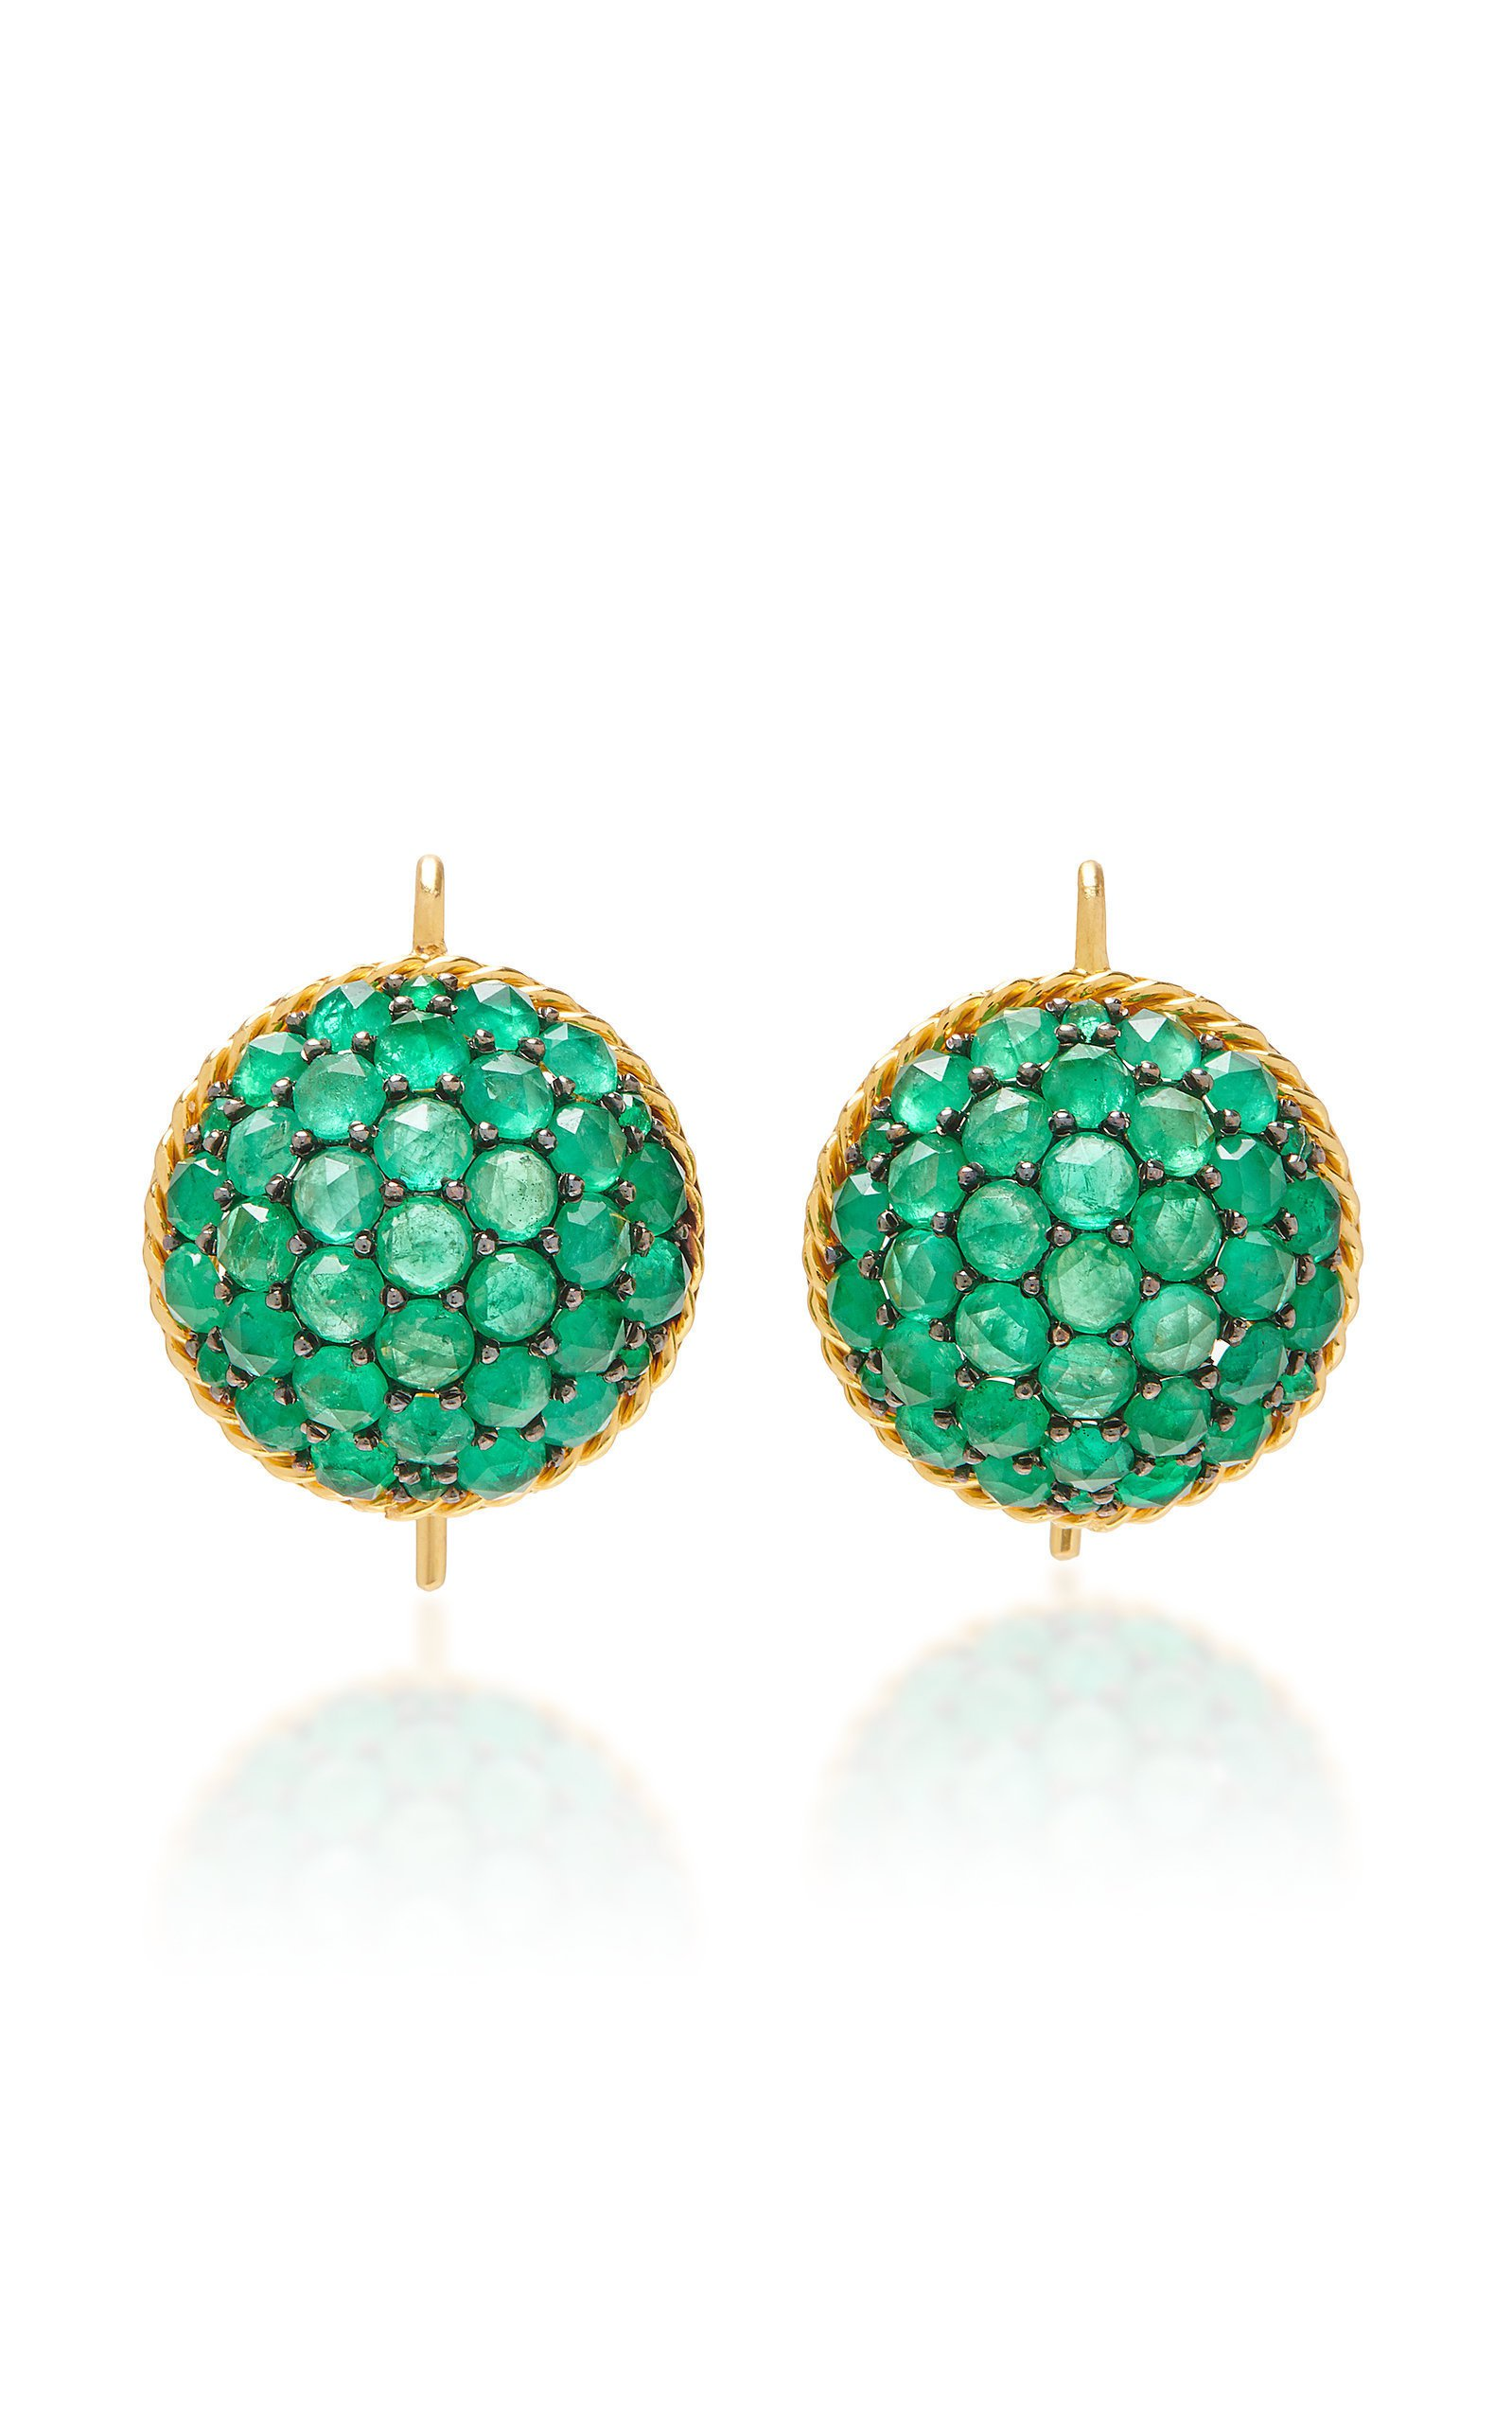 Parulina 18K Gold And Emerald Earrings